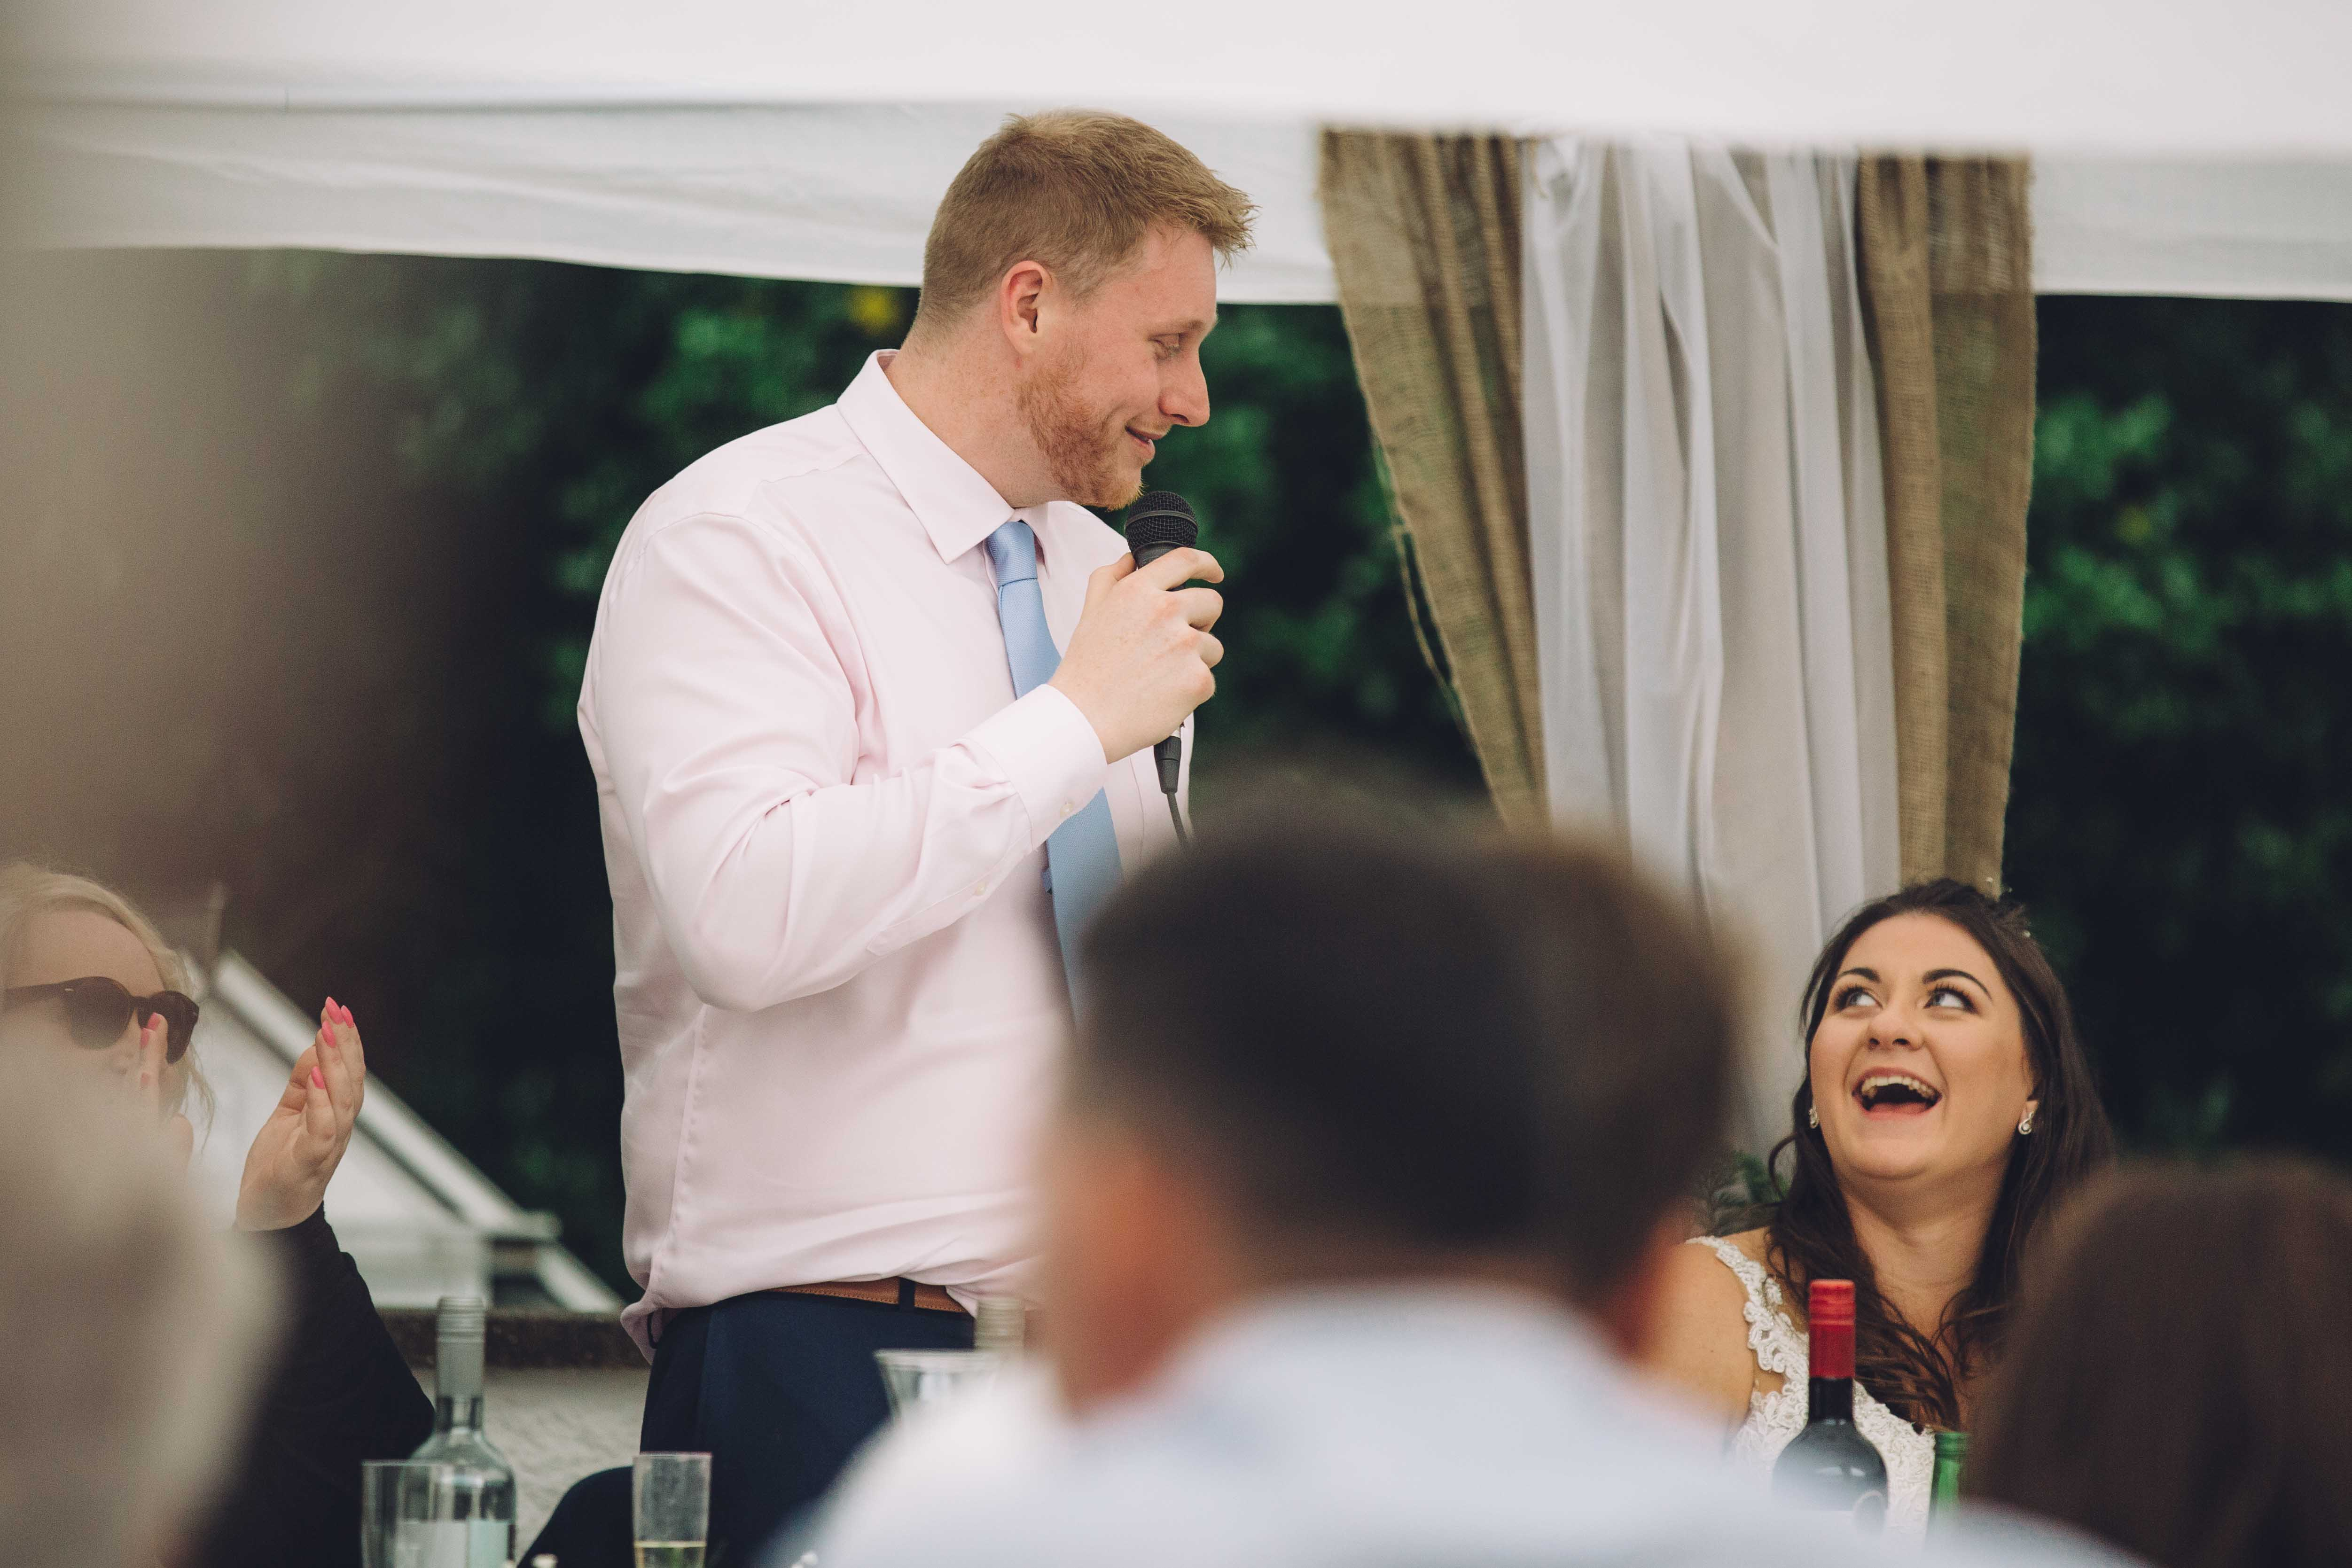 Groom at Birmingham Wedding gives his speech